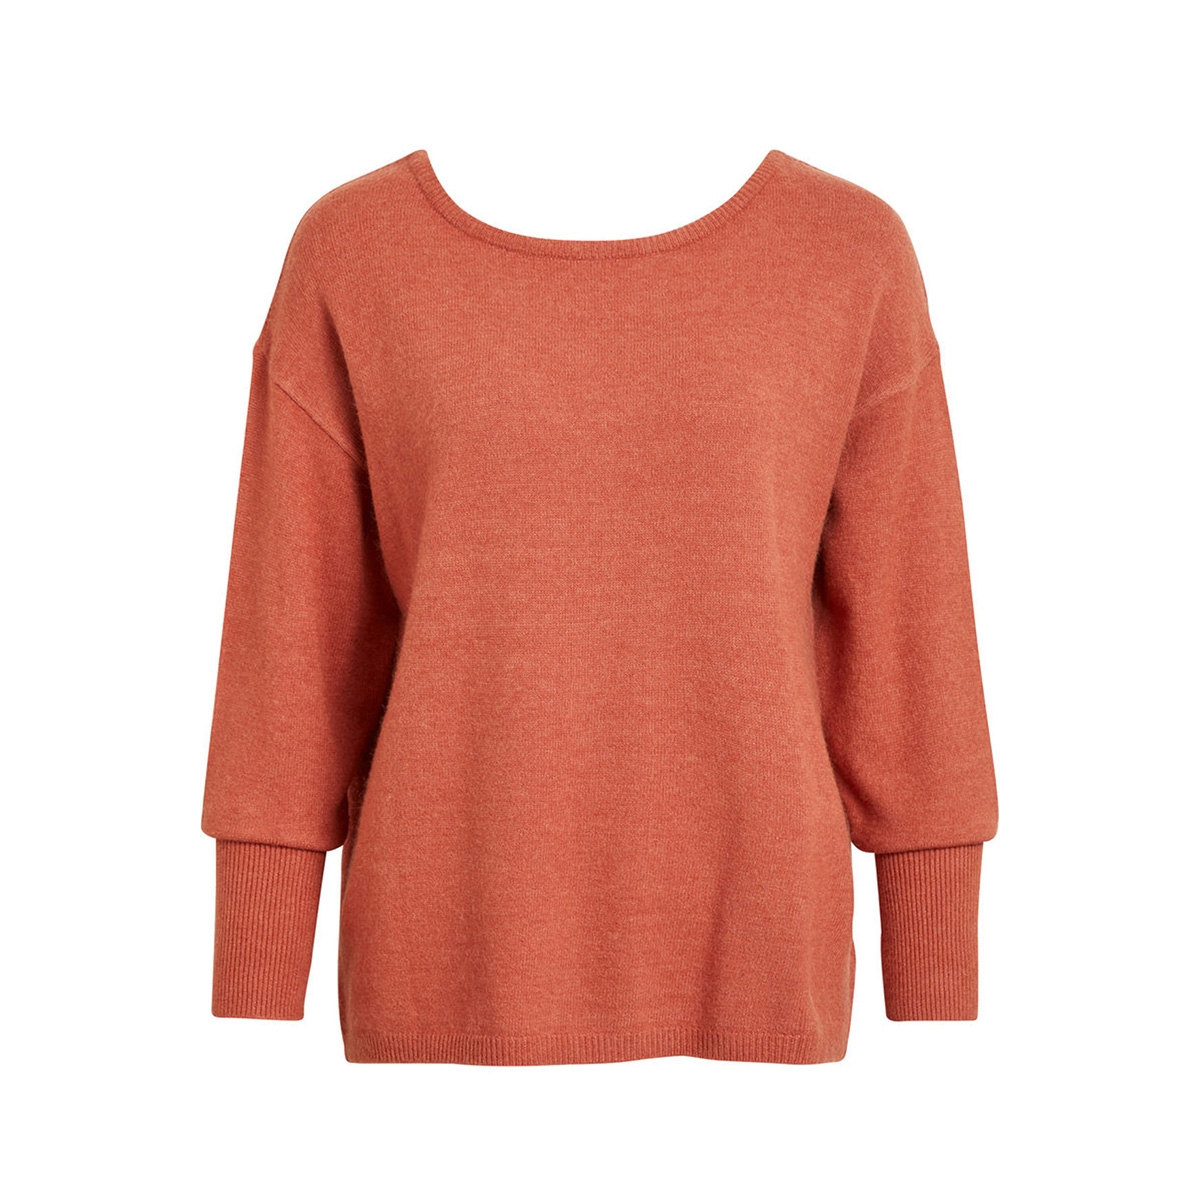 viril button knit l/s top-fav nx 14049676 vila trui redwood/melange